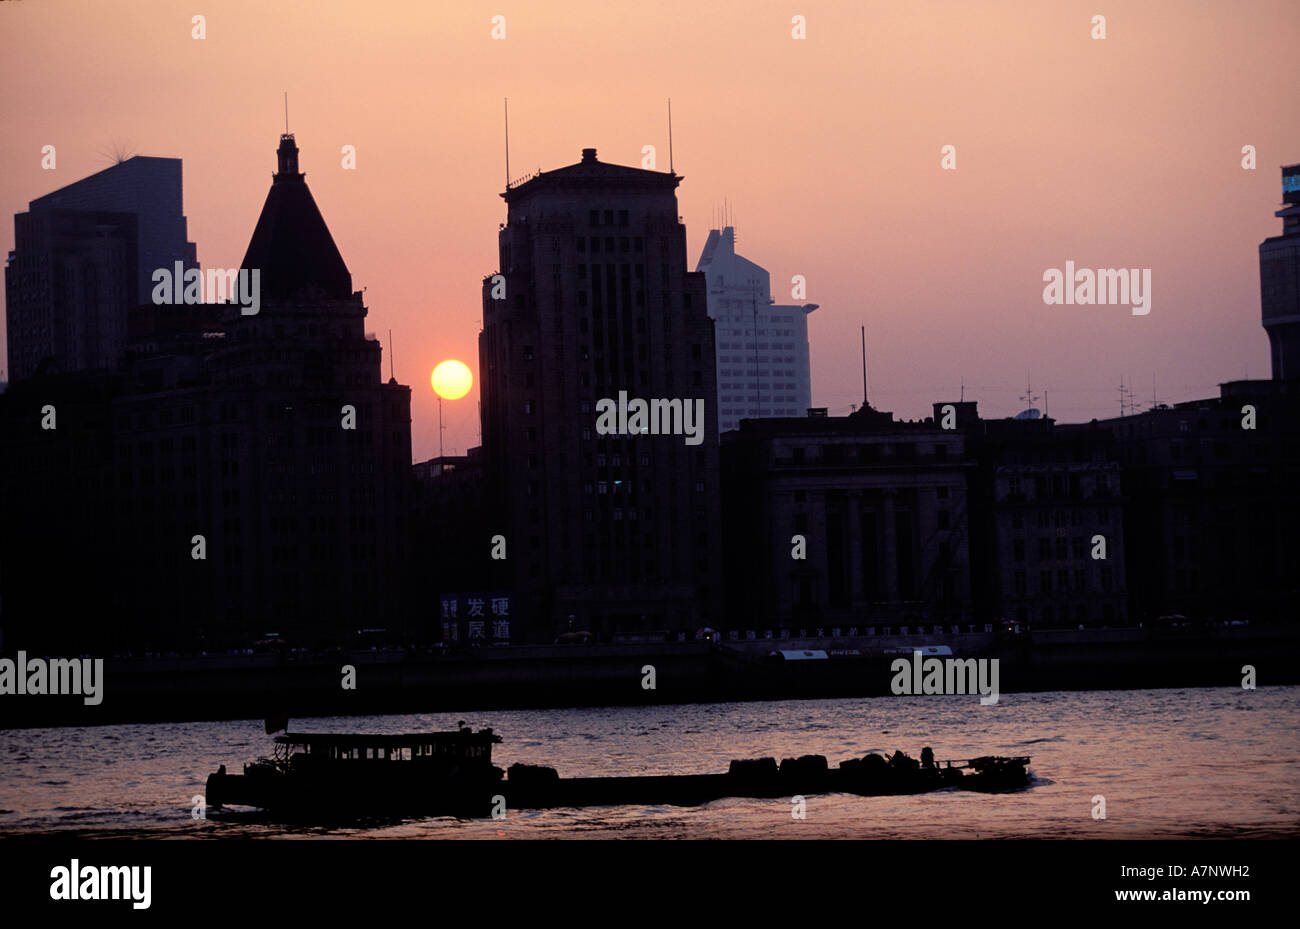 China, Shanghai city, the Bund, symbol of 30's Neoclassical architecture - Stock Image